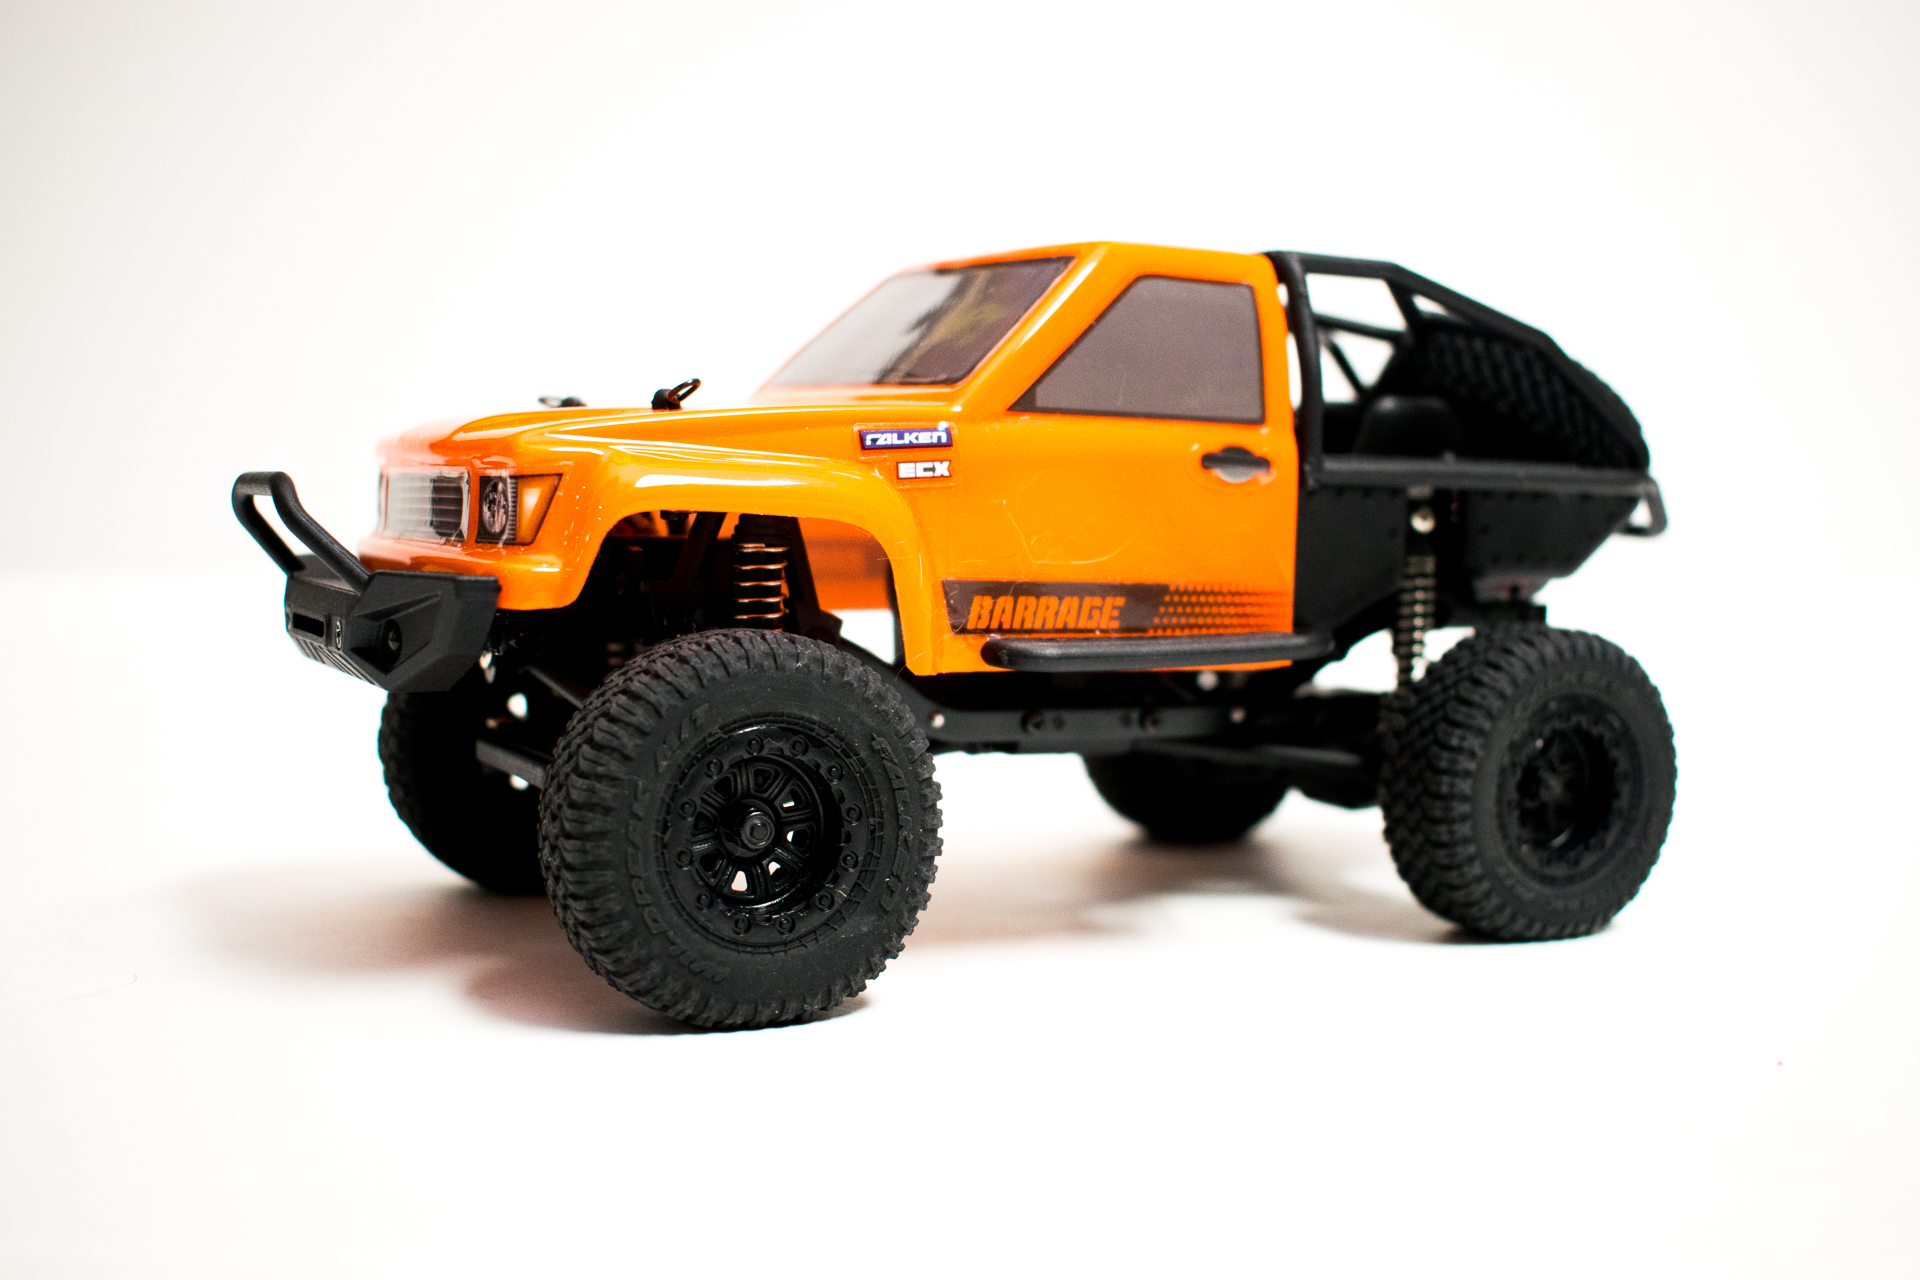 ECX Barrage 124 Side Front